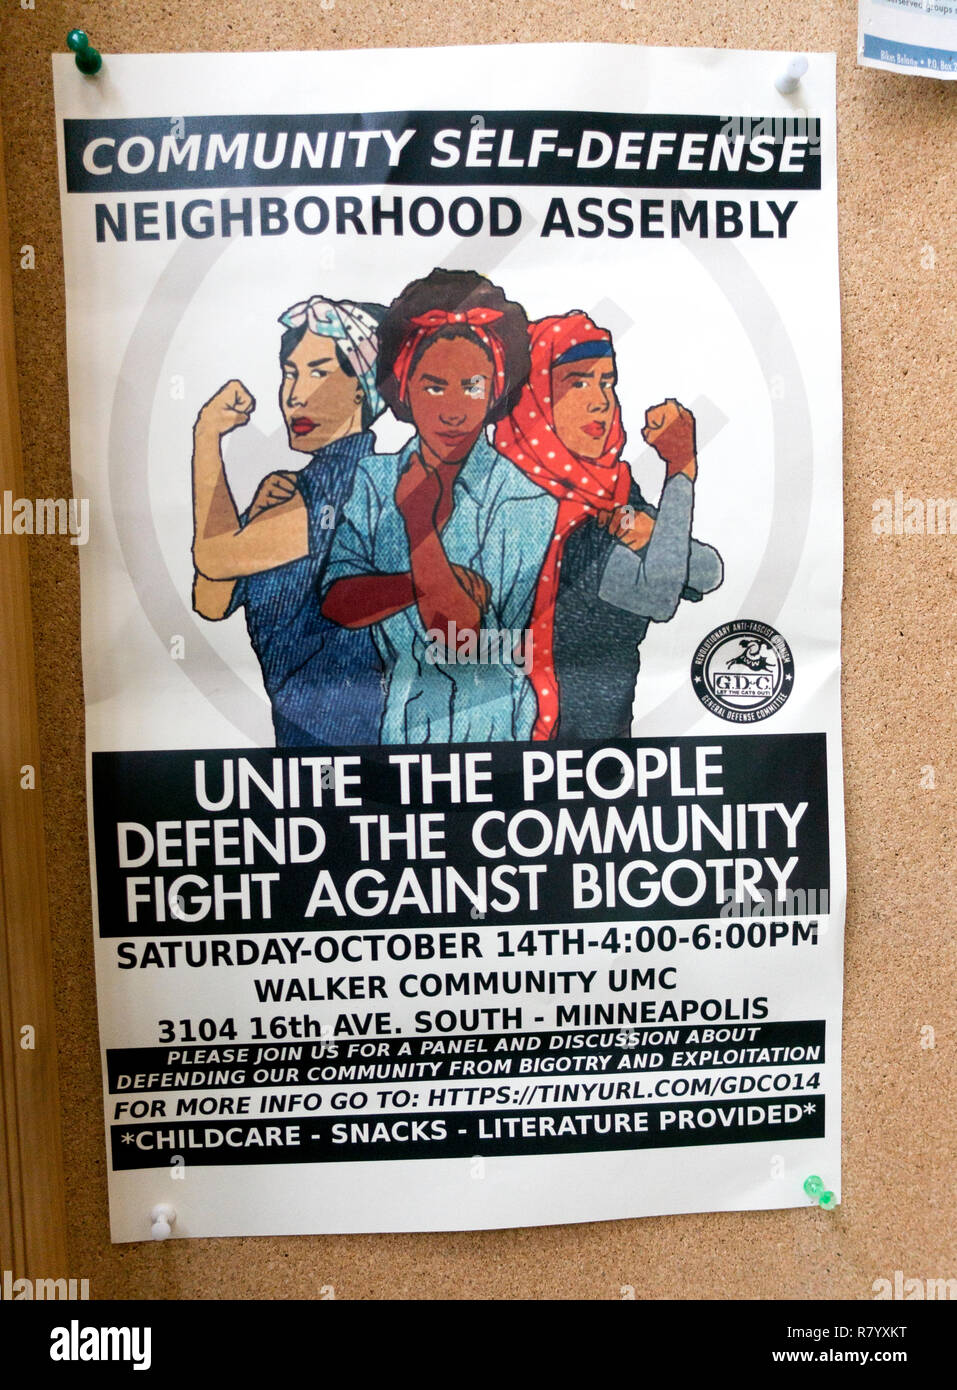 Multicultural women on a poster advertising self-defense for a community fight against bigotry. Minneapolis Minnesota MN USA - Stock Image